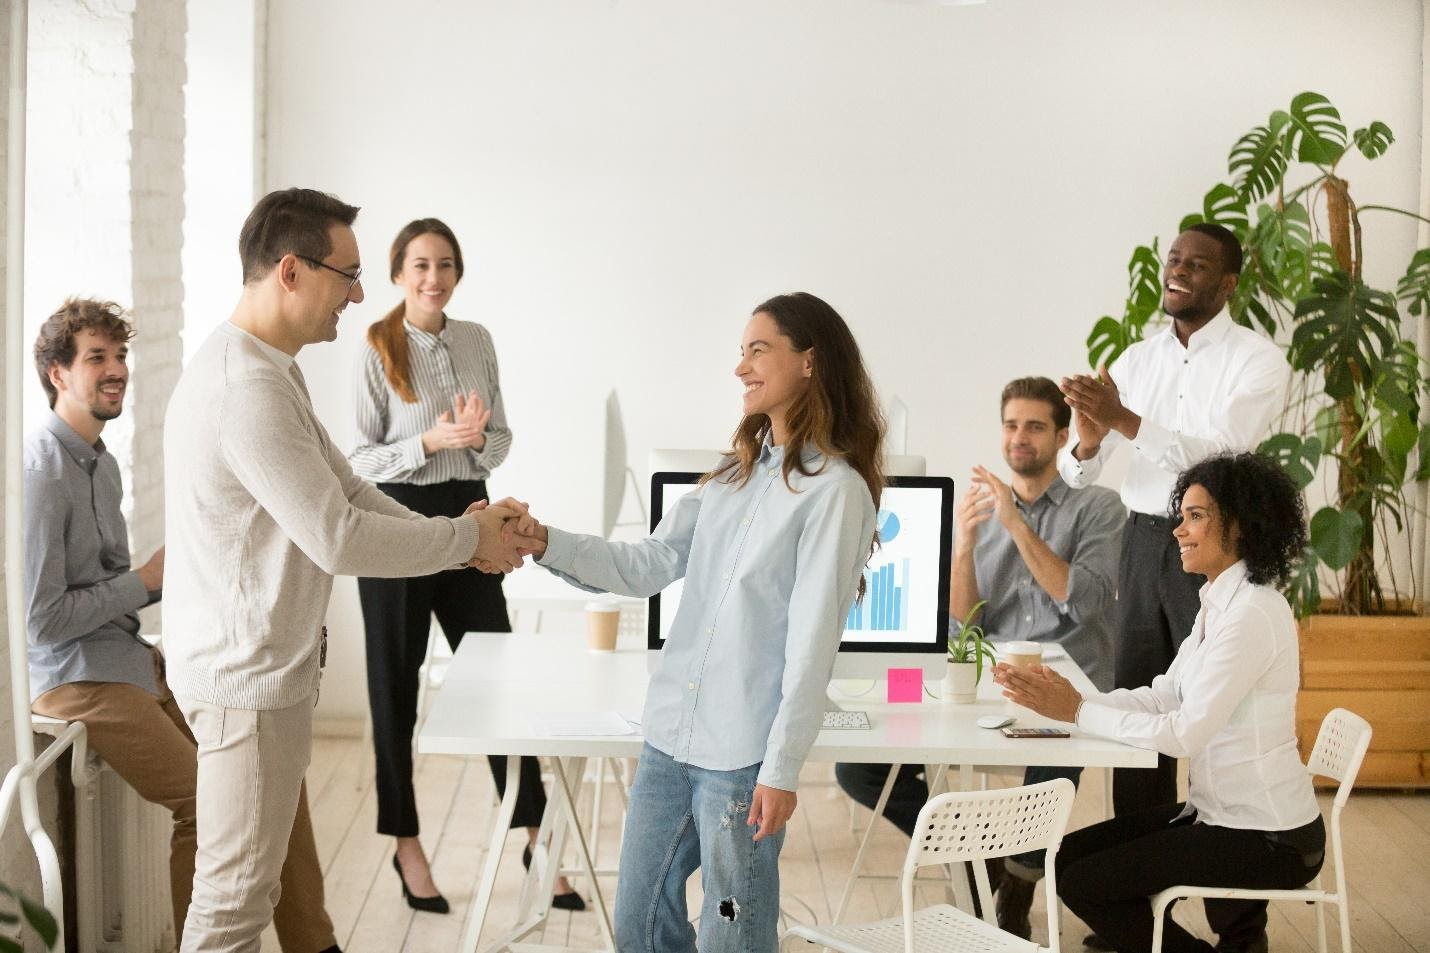 How to Make a New Employee Feel More Welcome